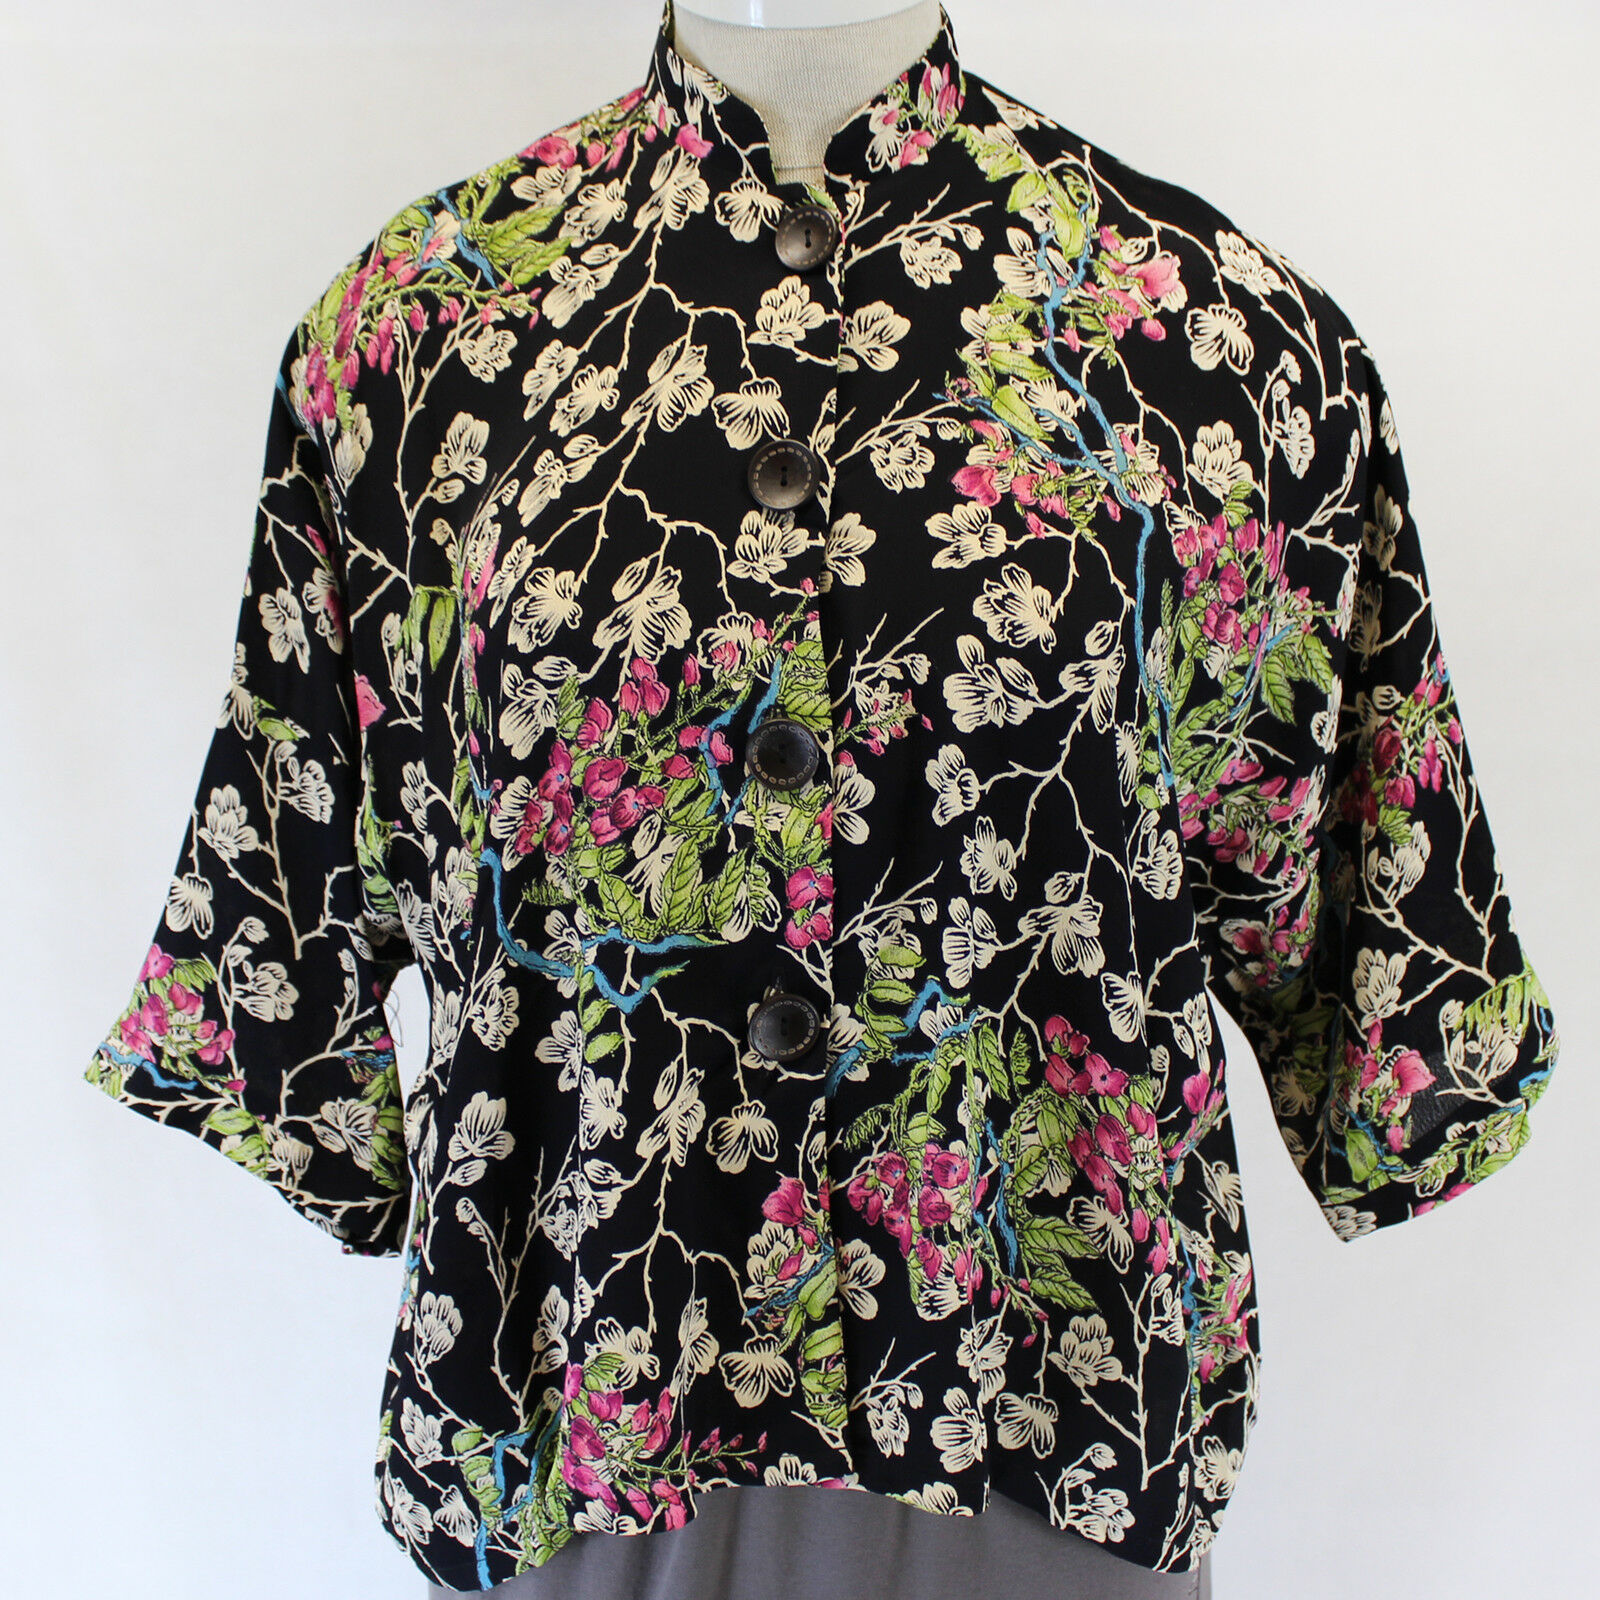 Pink Wheels Vintage Whisteria Floral Print Blouse Top One Size XL 1X 2X